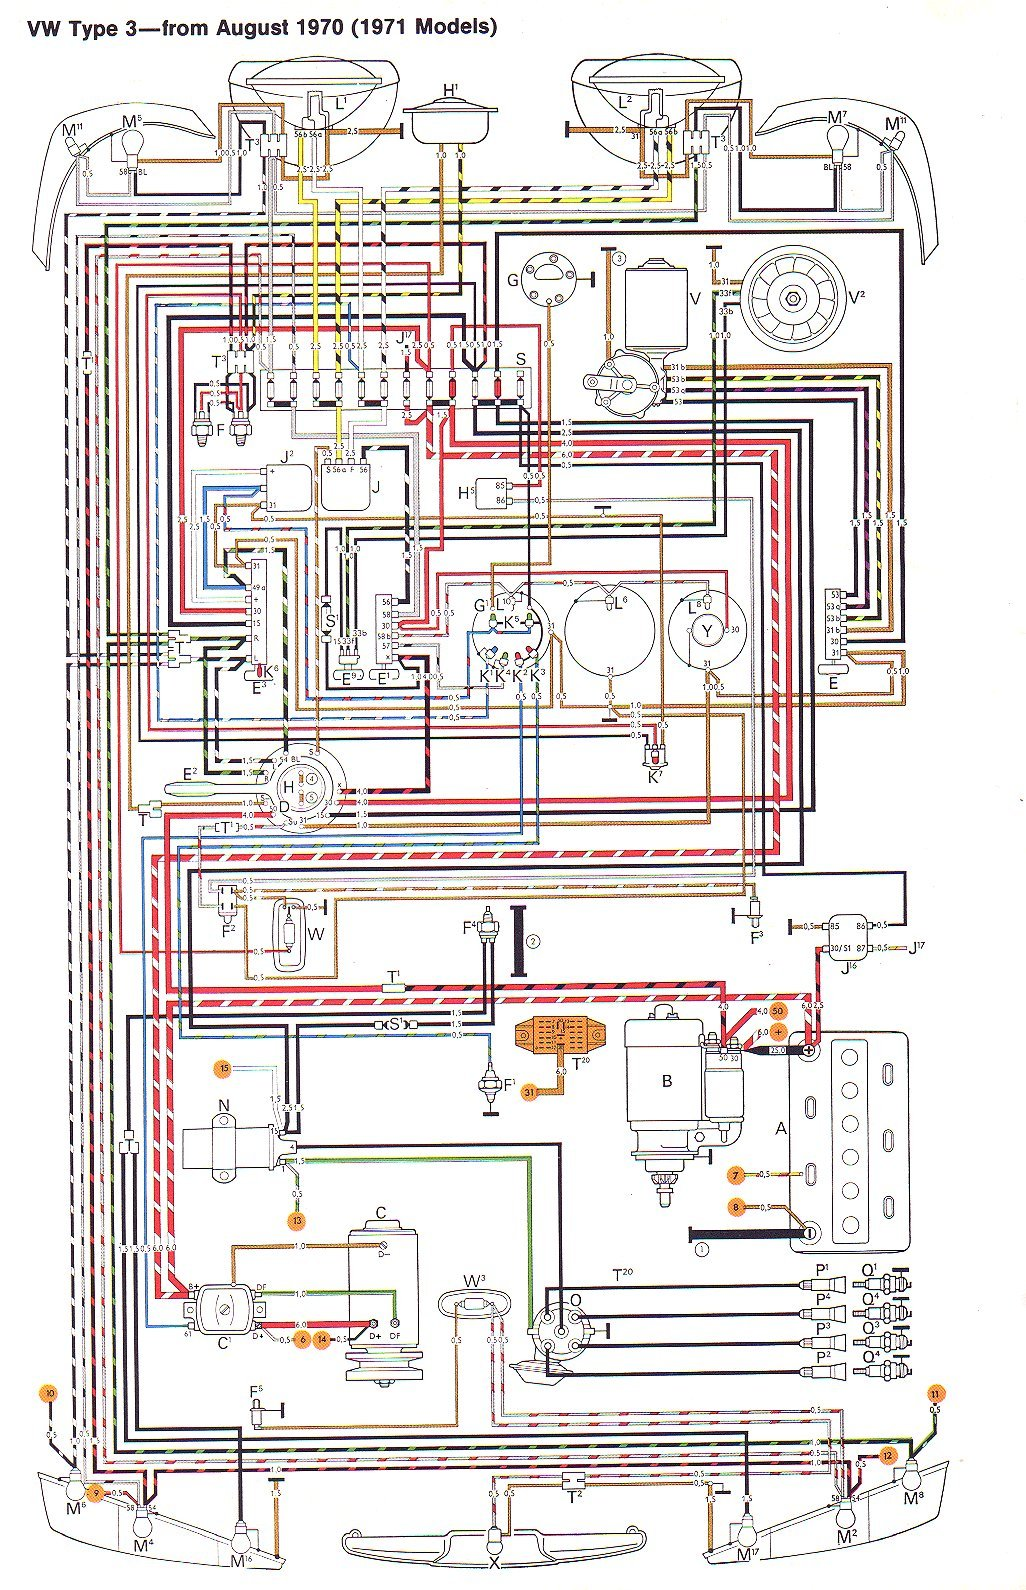 Wiring Diagrams For 1970 Vw Fastback Start Building A Diagram 70 Mustang Schematic Type 3 Rh Hallvw Clara Net 1965